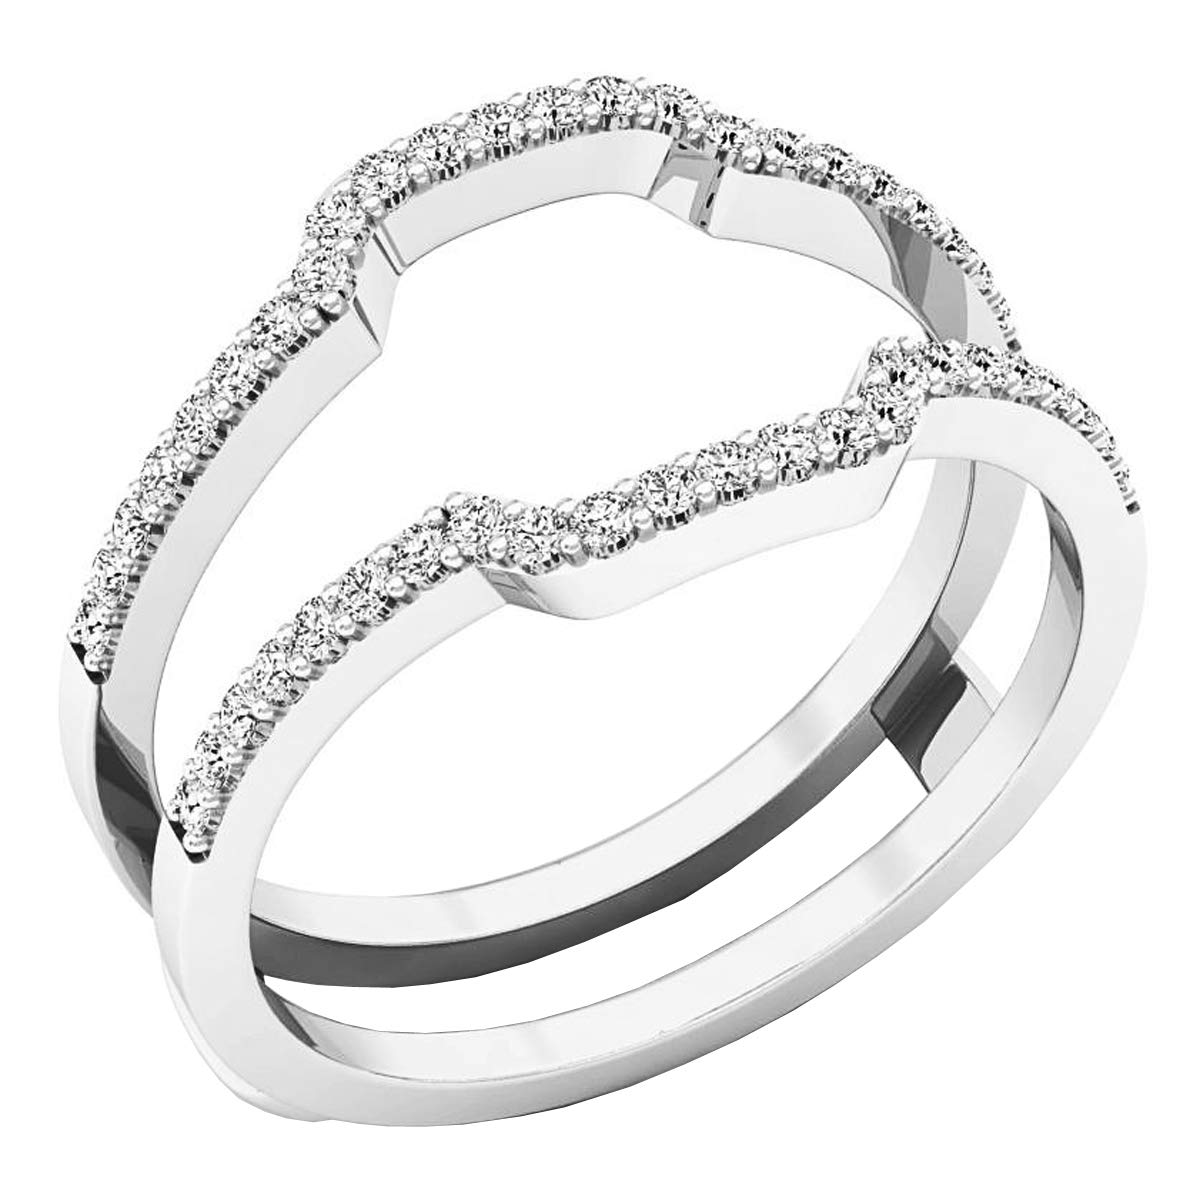 Dazzlingrock Collection 0.25 Carat (ctw) 10K White Diamond Wedding Band Enhancer Guard Ring 1/4 CT, White Gold, Size 7.5 by Dazzlingrock Collection (Image #1)